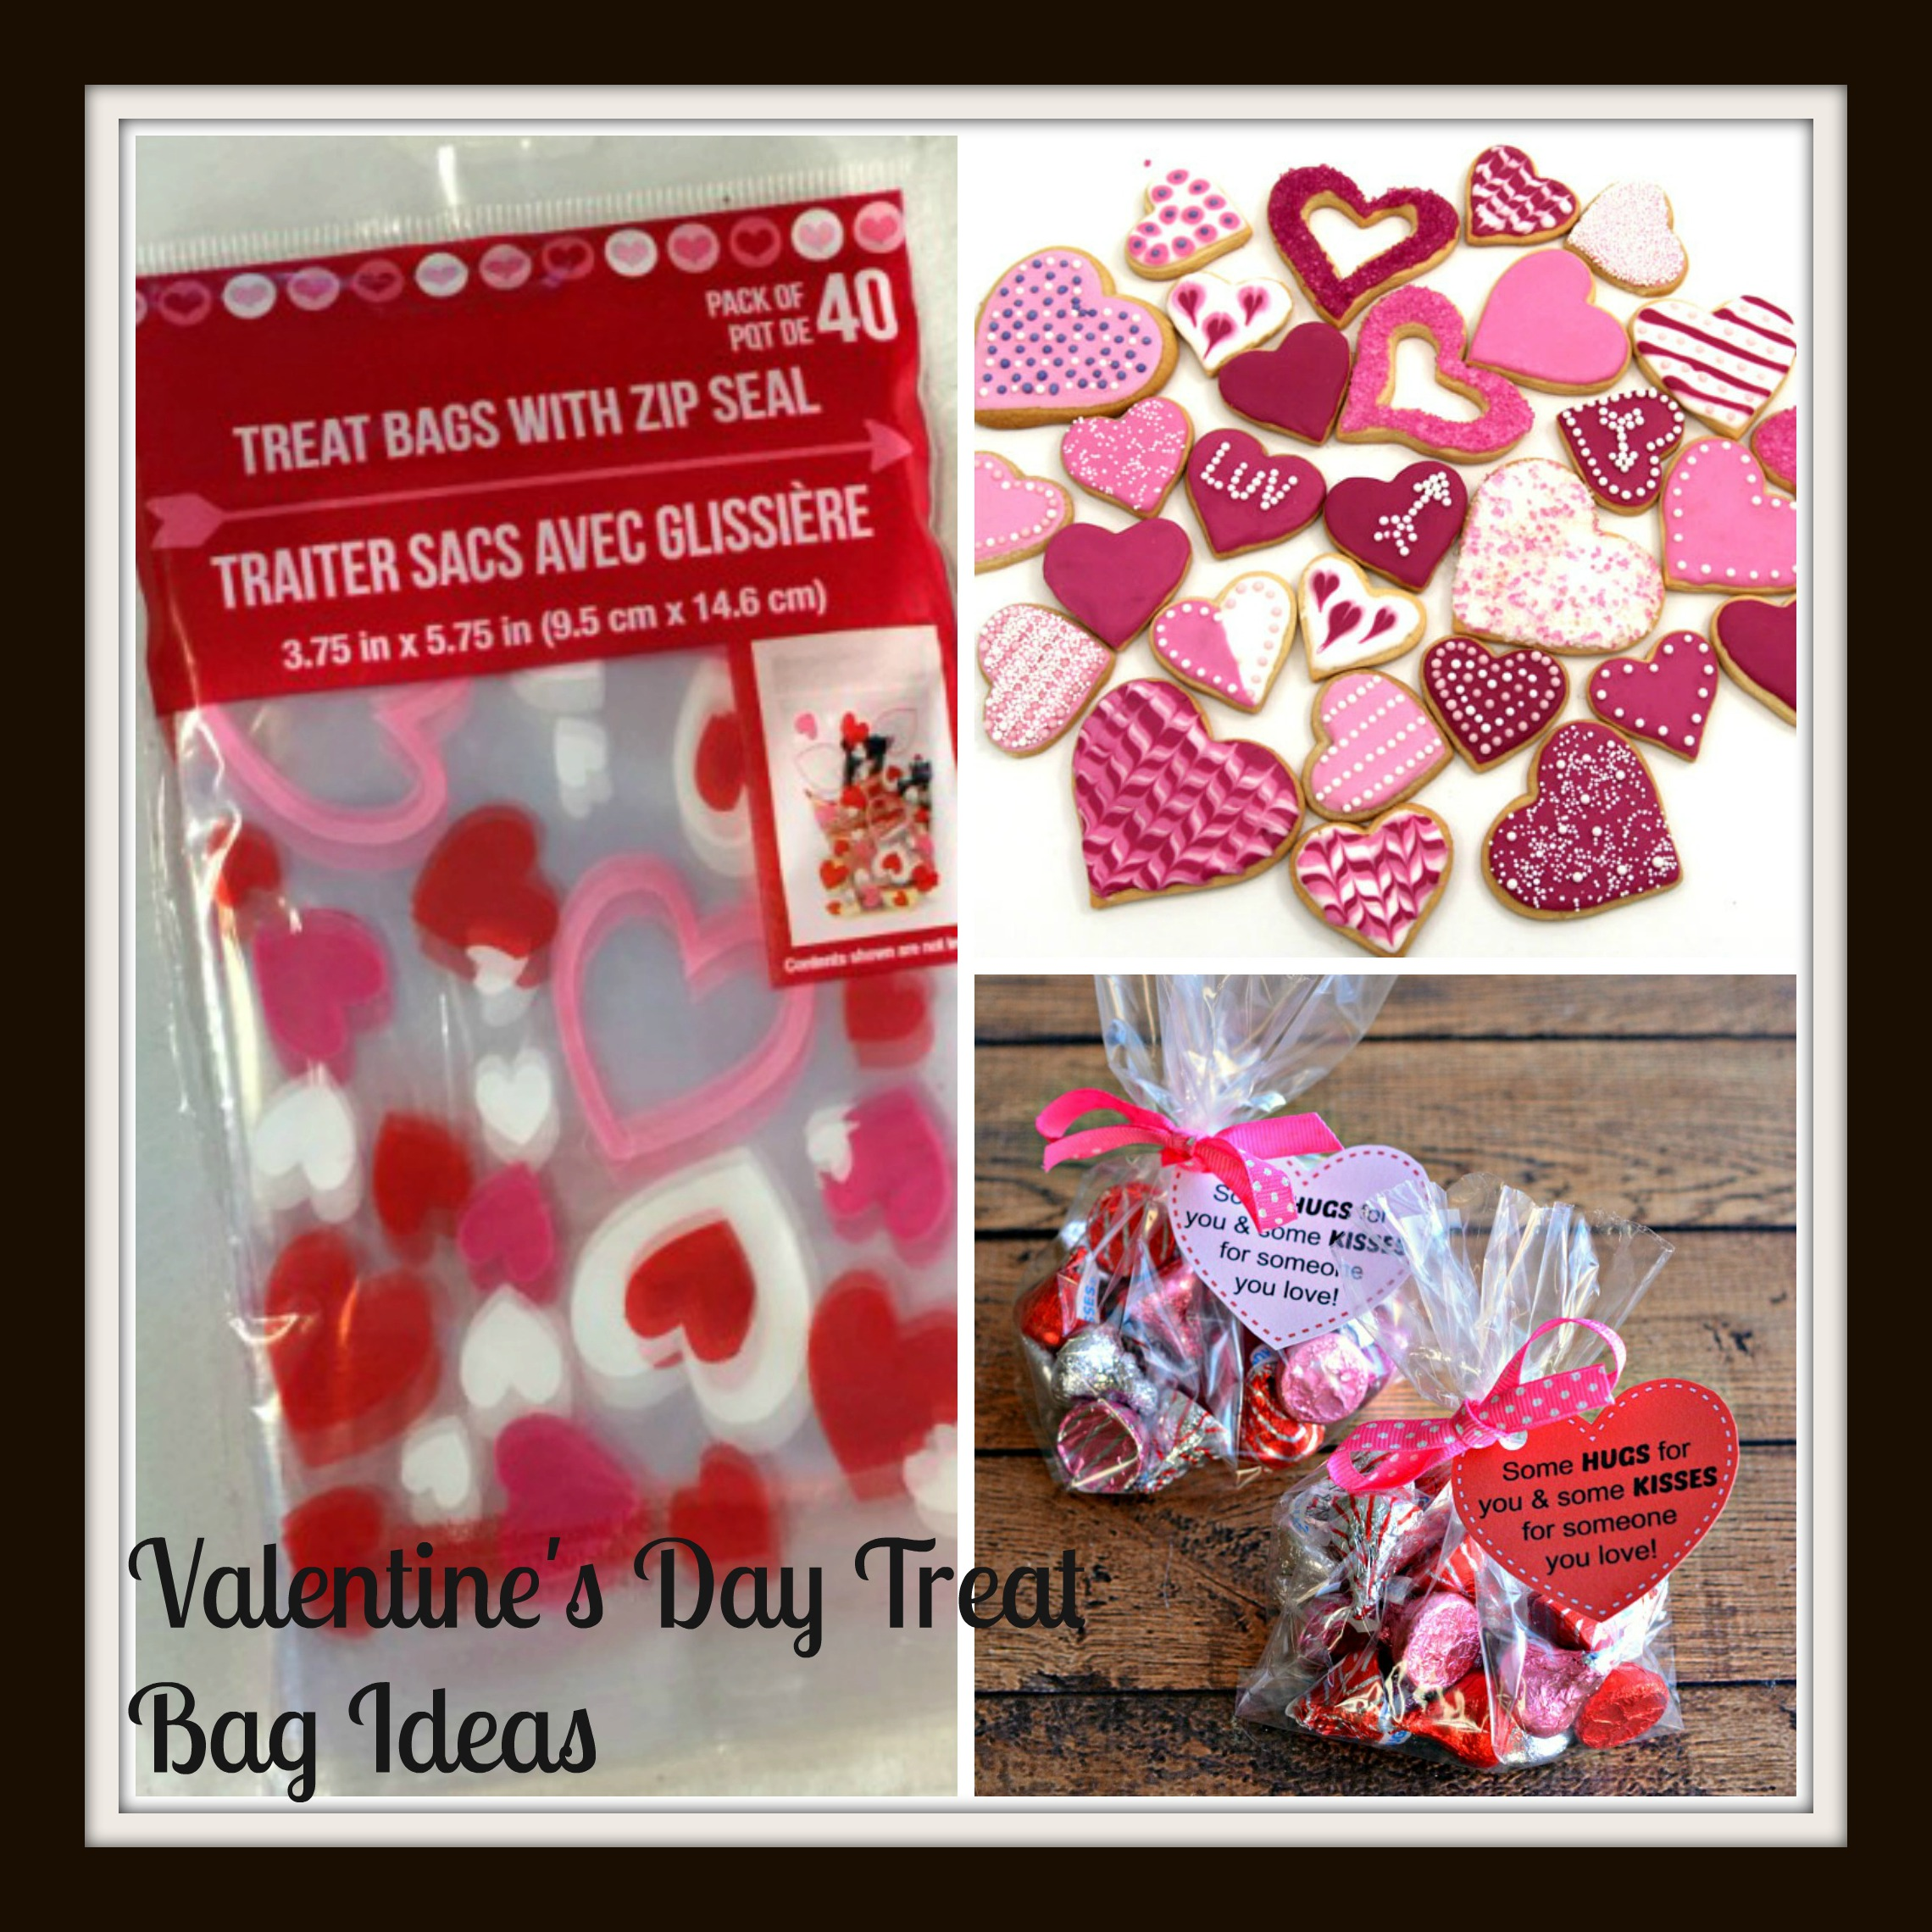 treatbags valentines day parties